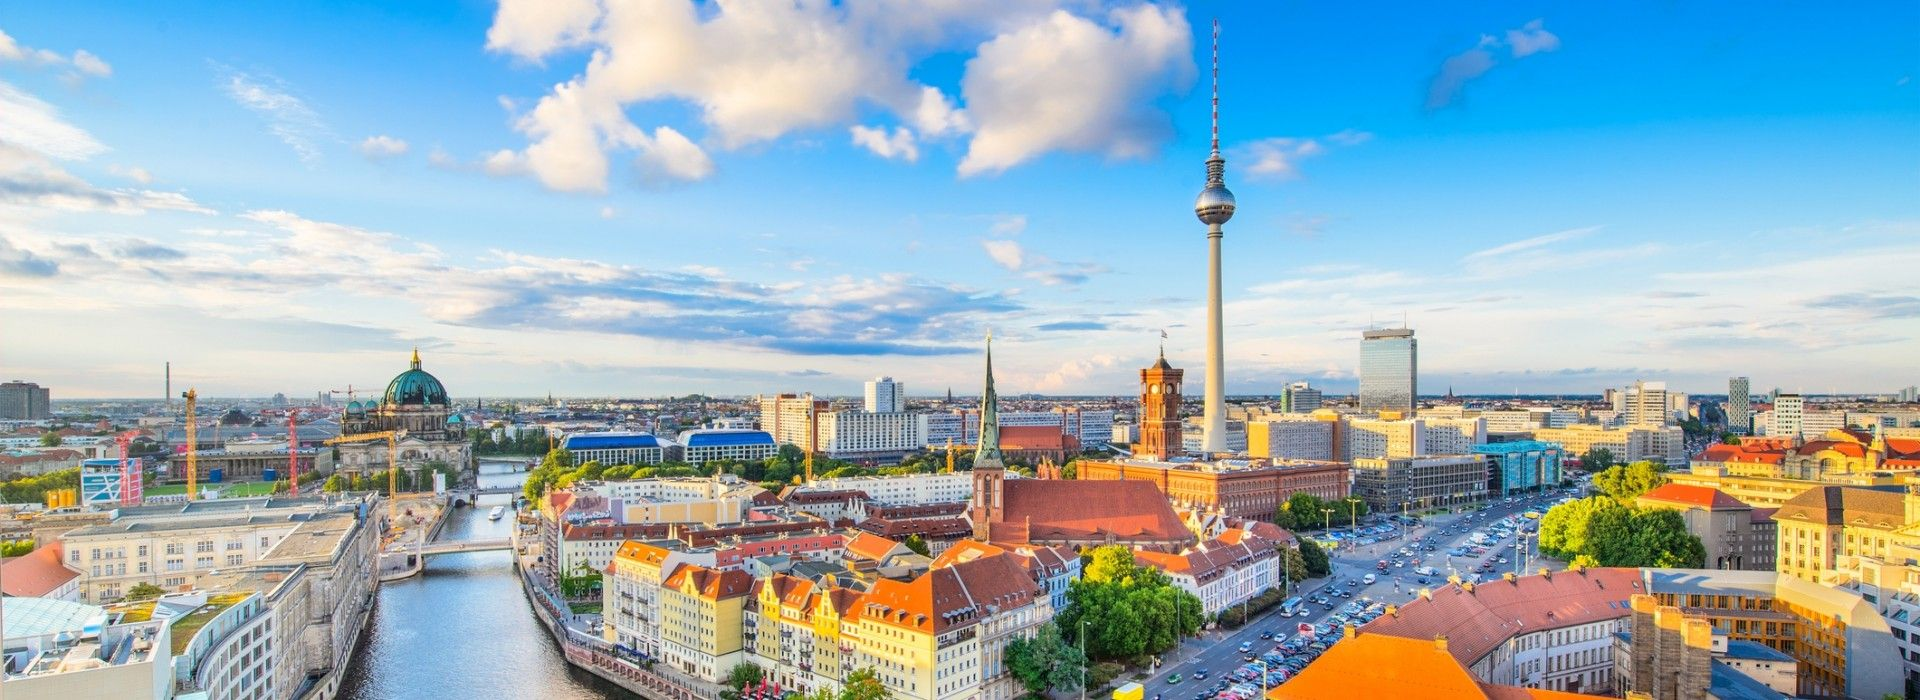 Sightseeing, attractions, culture and history Tours in Berlin